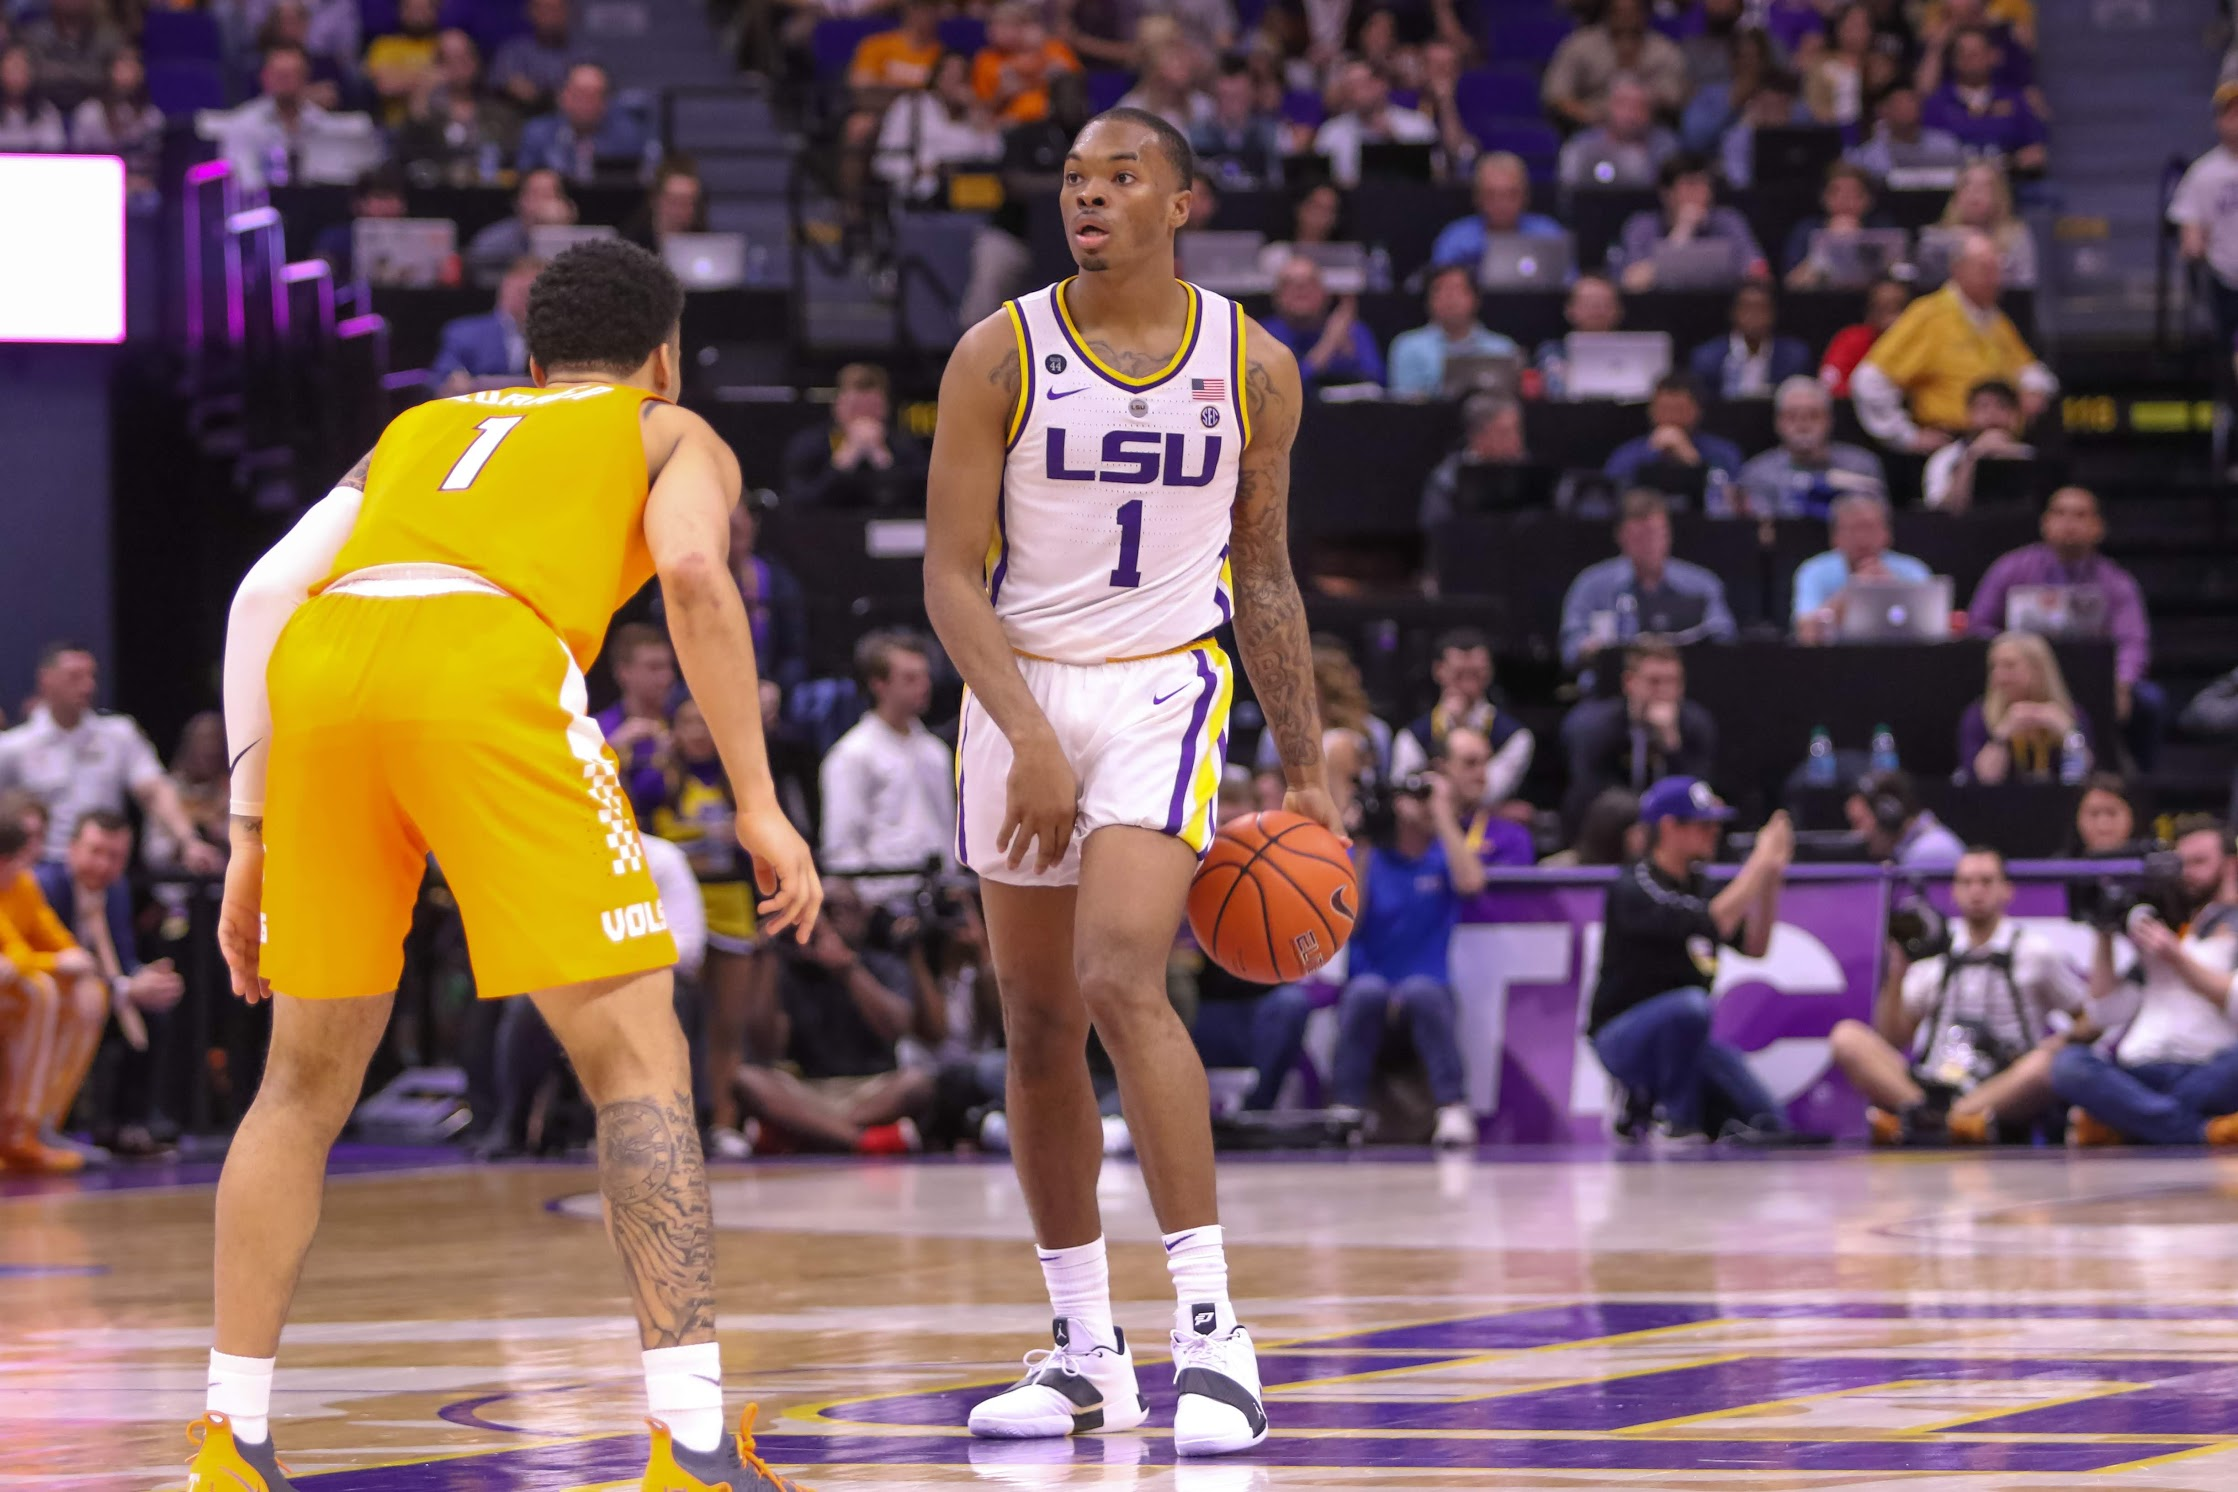 LSU remains at No. 13 in the latest AP Poll